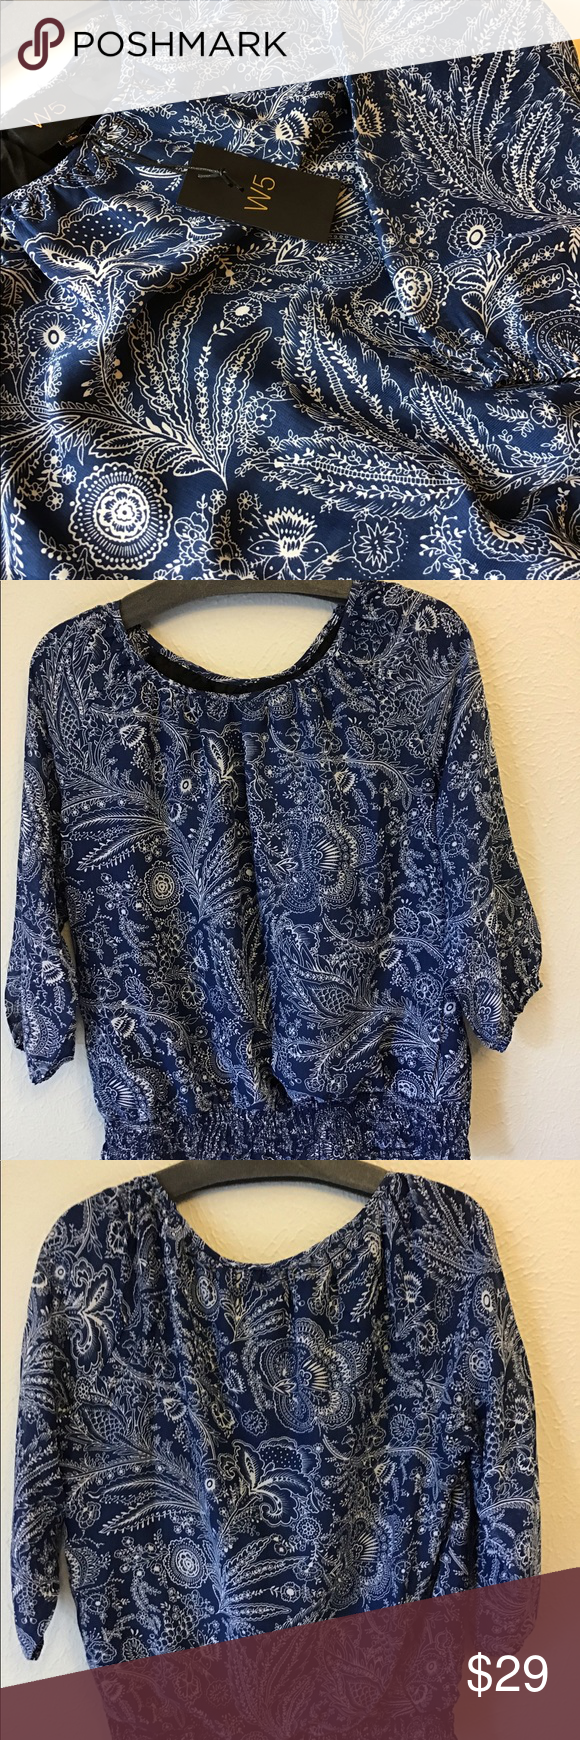 NWT W5 short sleeve blouse Beautiful blue pattern in this loose and lovely blouse. Wide Elastic waist.   W5 Medium NWT  Fun print for a fun gal!  Bundle and save all your faves.   Thanks!❤️ W5 Tops Blouses #wfaves NWT W5 short sleeve blouse Beautiful blue pattern in this loose and lovely blouse. Wide Elastic waist.   W5 Medium NWT  Fun print for a fun gal!  Bundle and save all your faves.   Thanks!❤️ W5 Tops Blouses #wfaves NWT W5 short sleeve blouse Beautiful blue pattern in this loose #wfaves